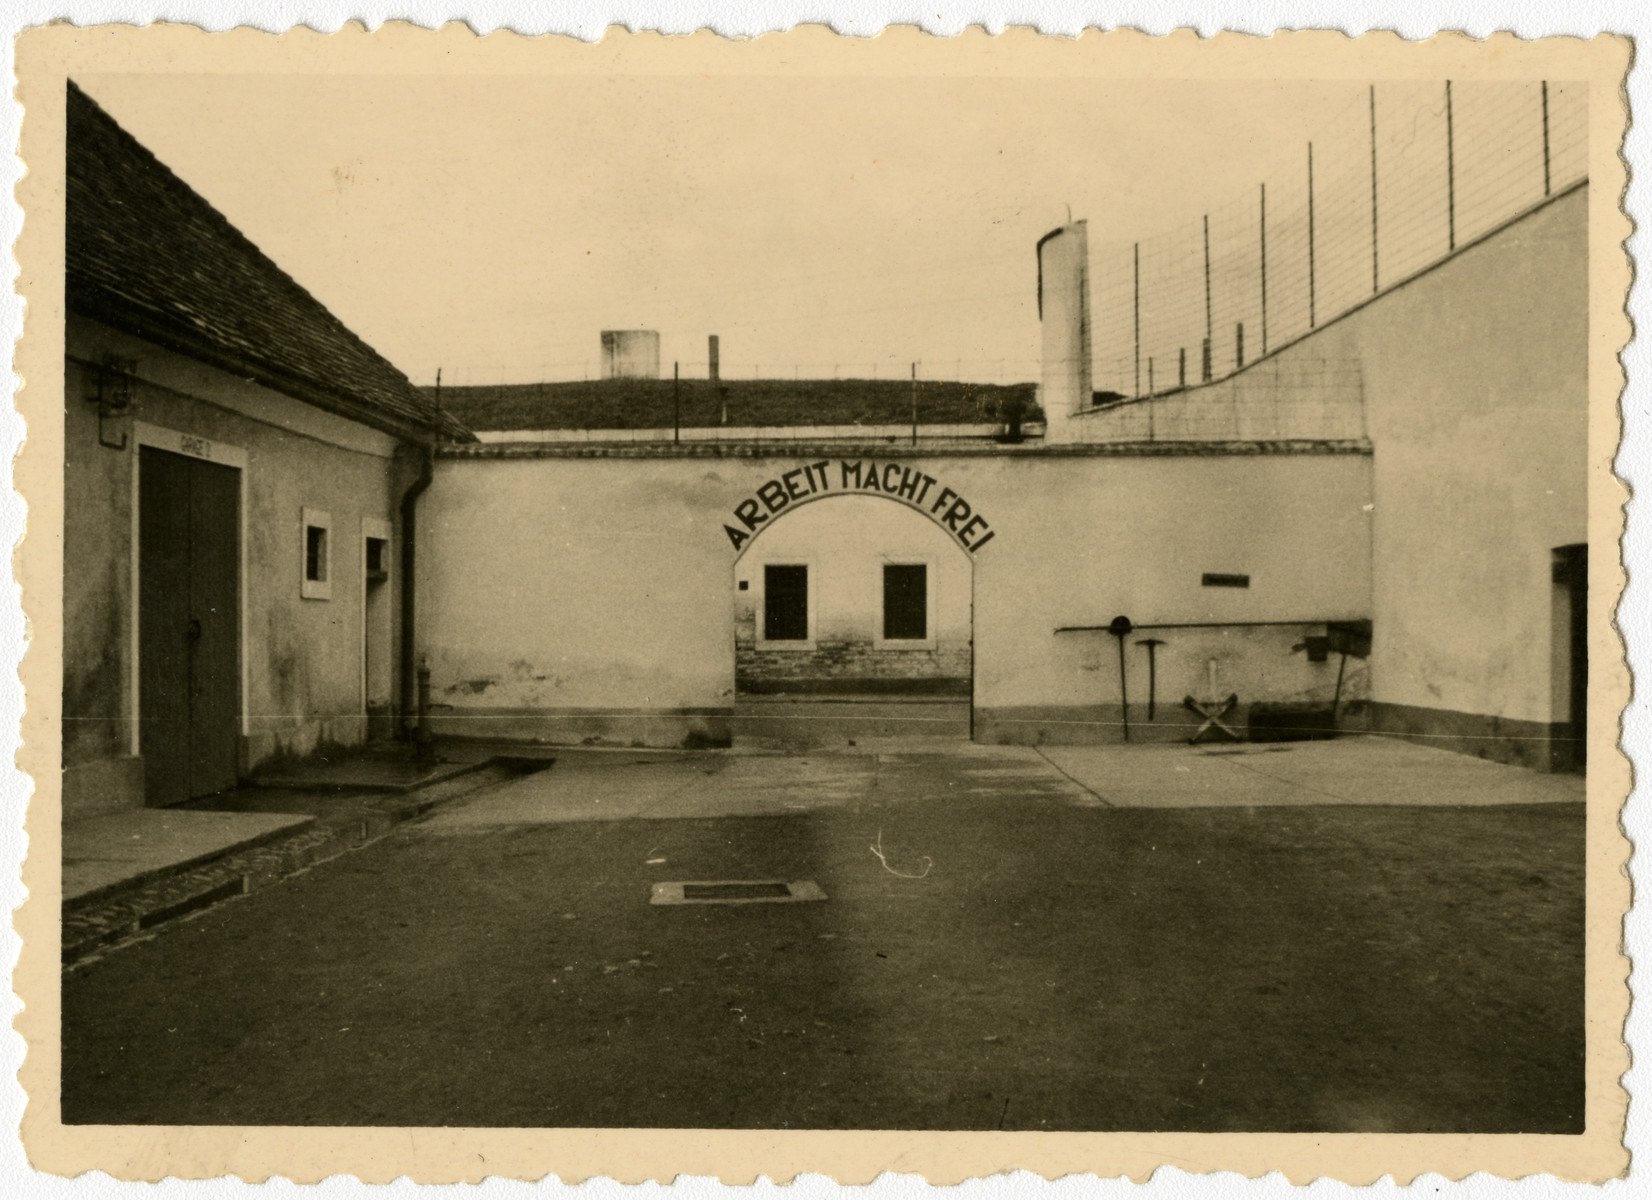 "An archway at Theresienstadt bearing the phrase, ""Arbeit Macht Frei.""   This image is one of twenty-six photographs contained in an album found by Jacob Igra in an apartment in Sosnowiec after the war. Many of the photographs are believed to have been taken by a soldier with the SD-SIPO (Sicherheitspolizei) following the invasion of Poland in 1939. Additional photographs depict einsatzgruppen activities at sites throughout Nazi occupied Eastern Europe and may have been later additions to the album."